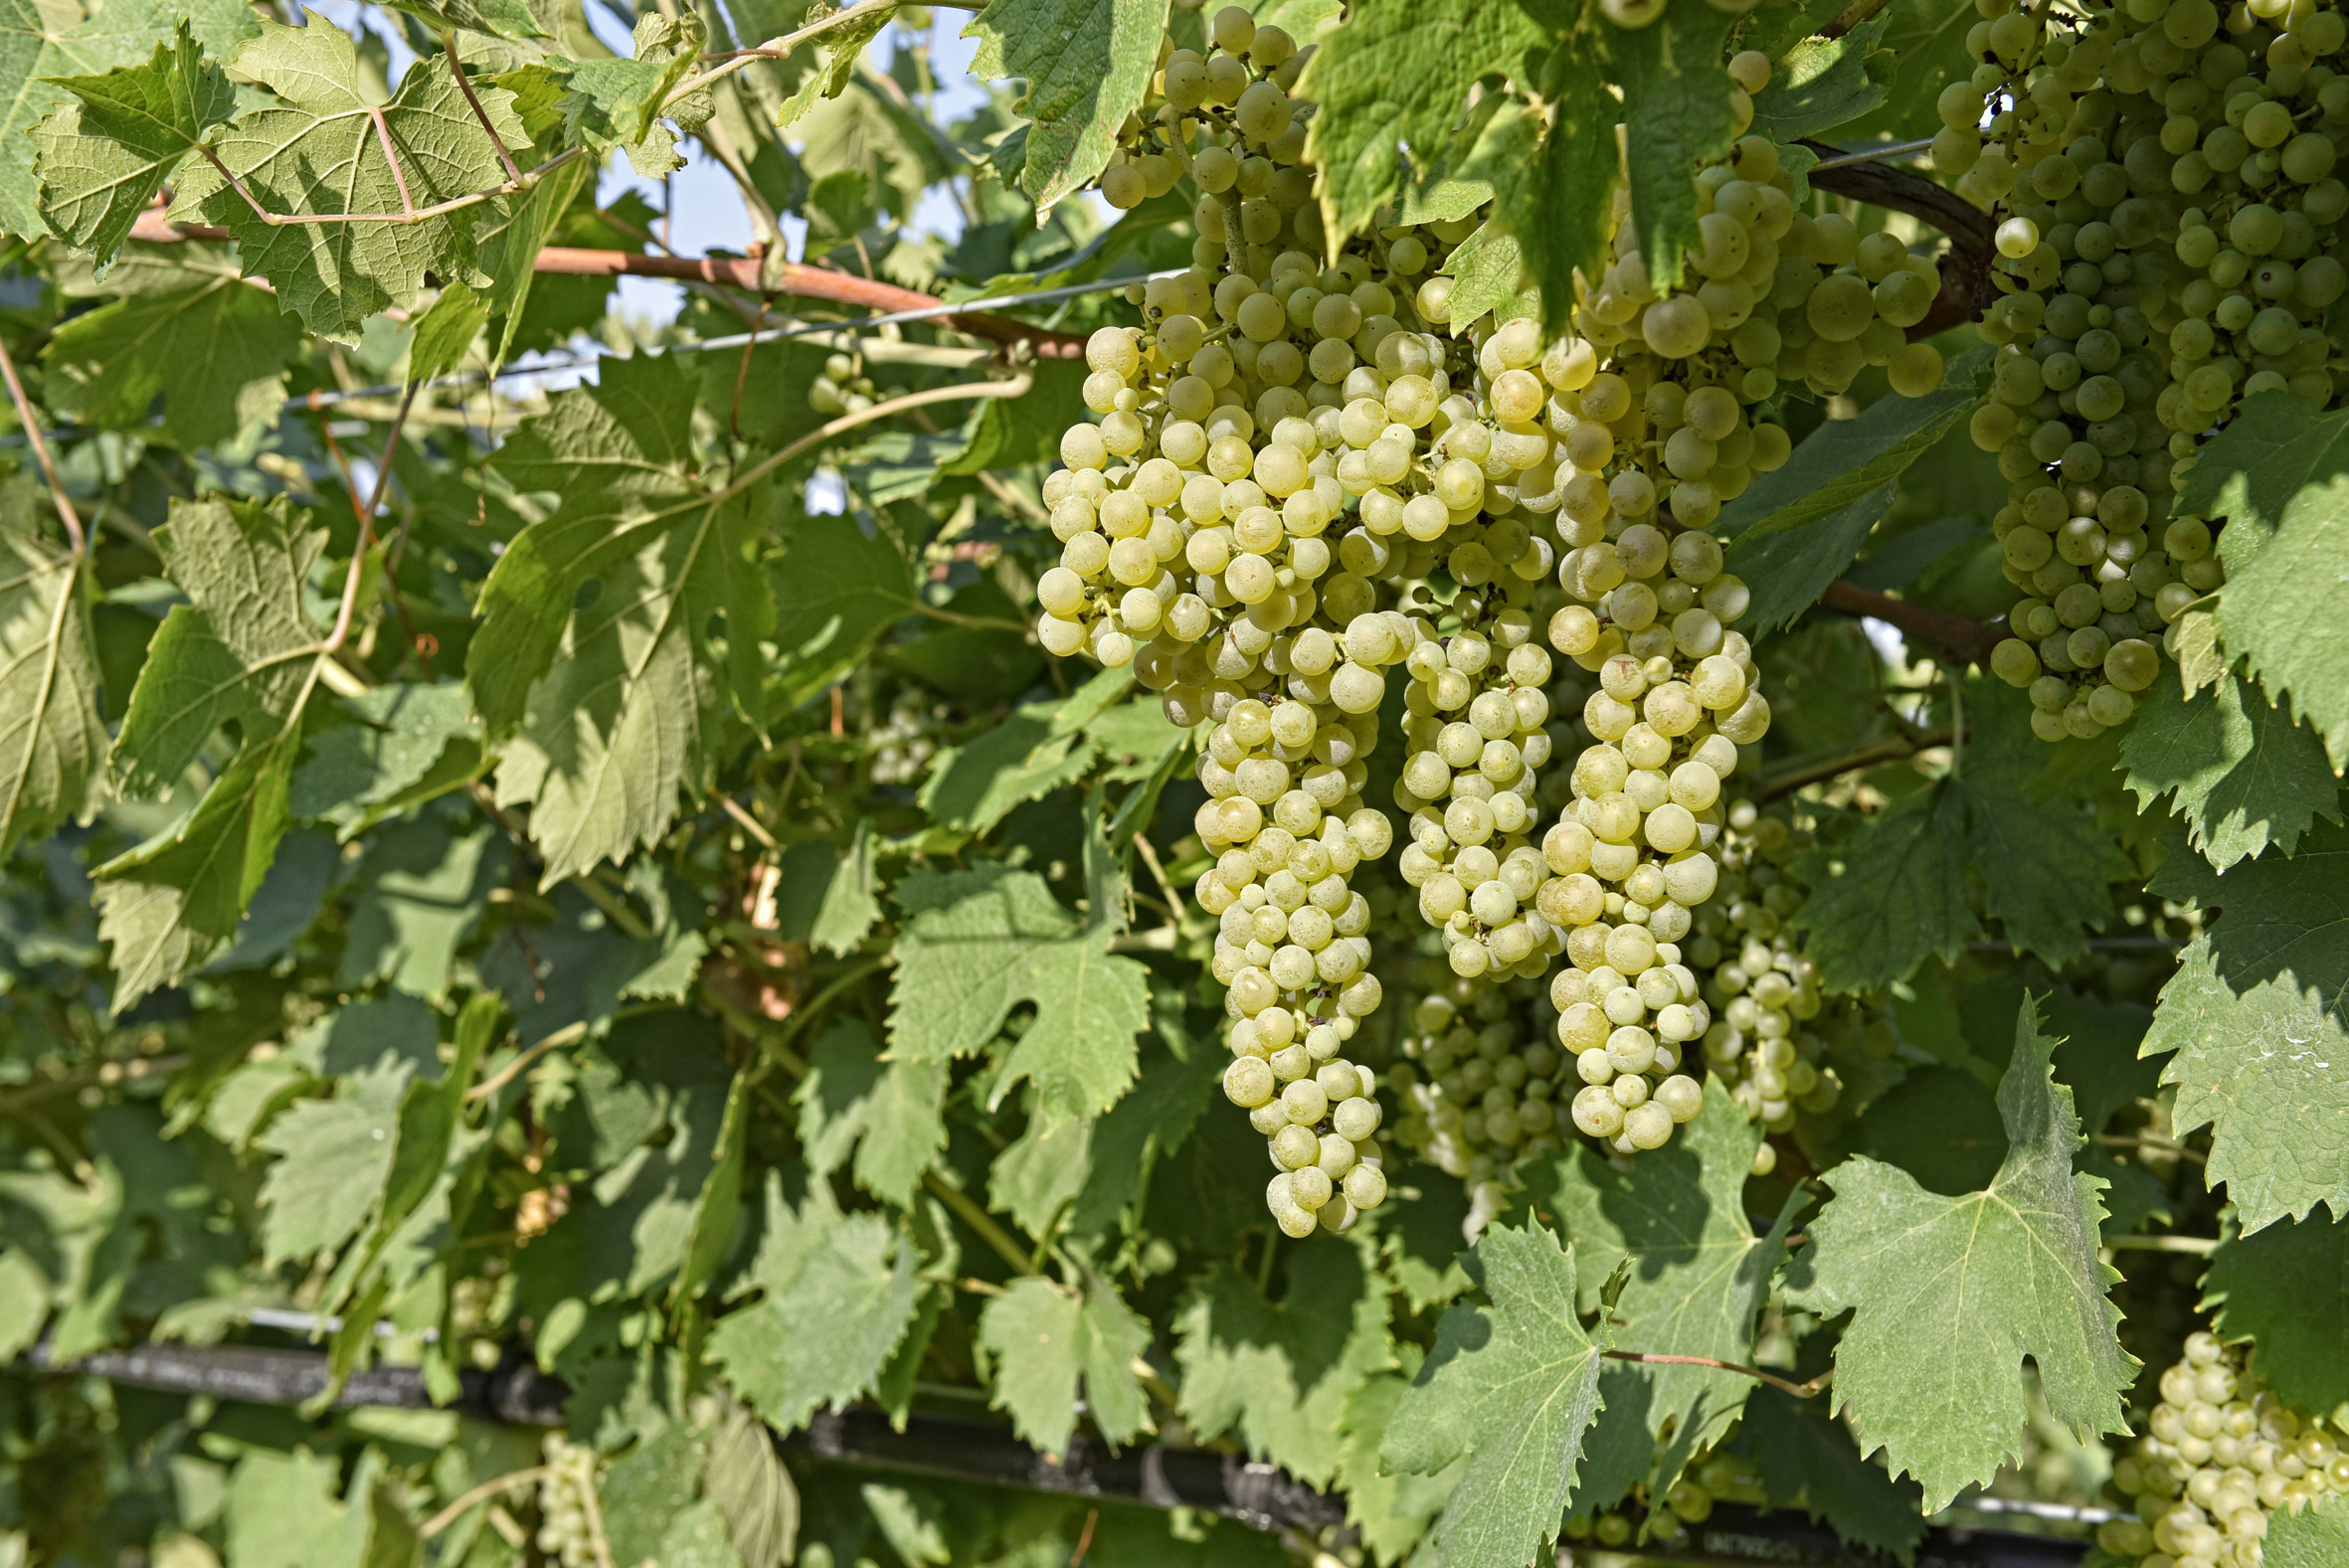 The vineyard and its fruits